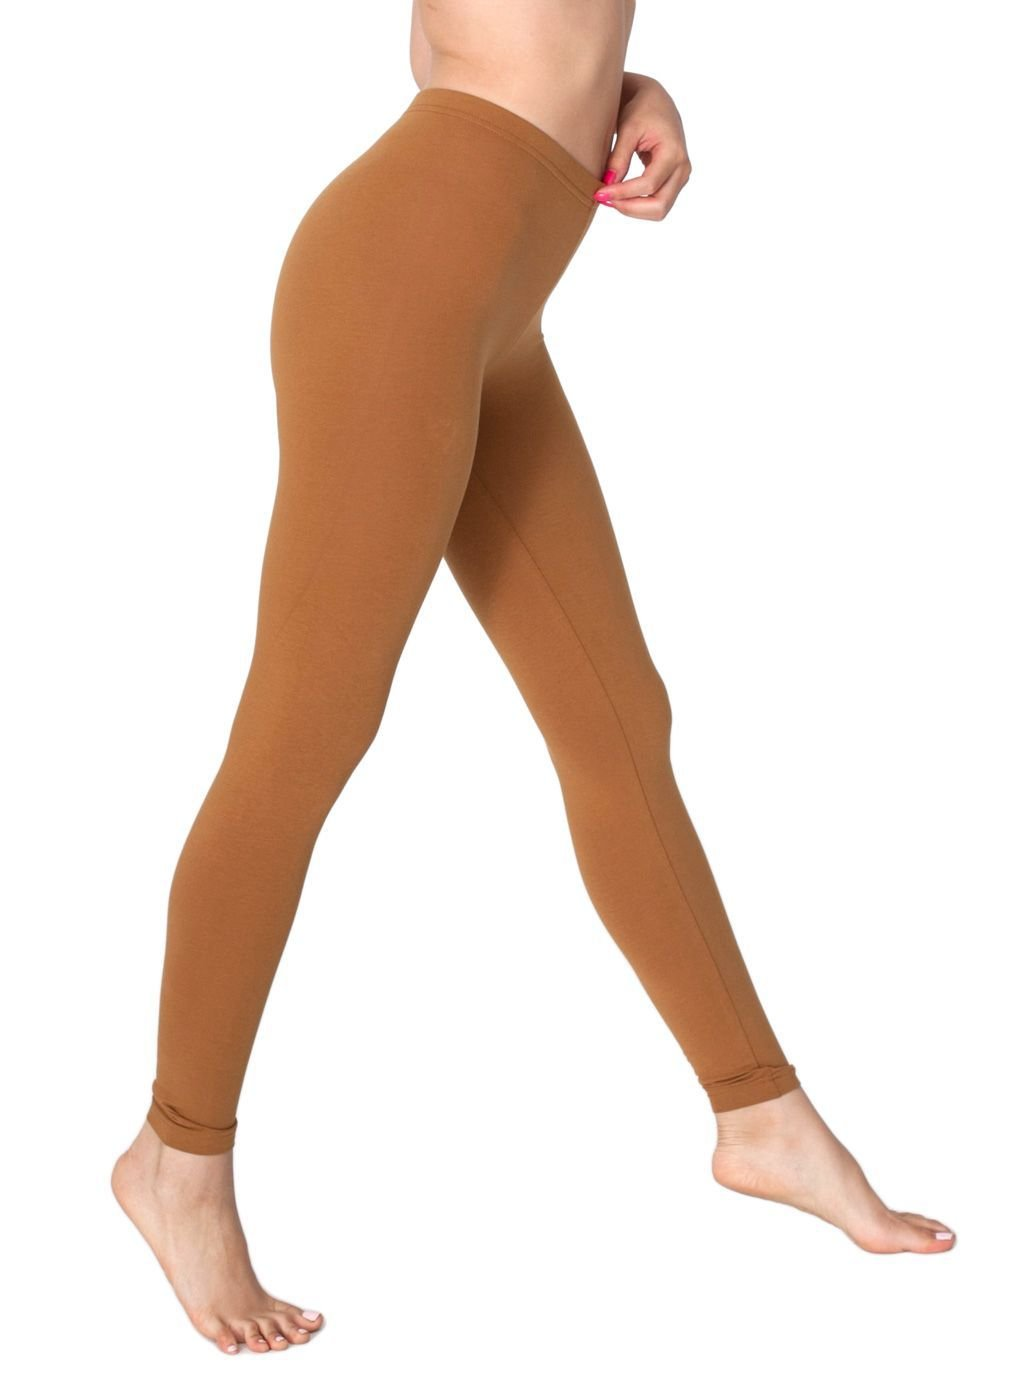 American Apparel Women's Cotton Spandex Jersey Legging Size S Camel